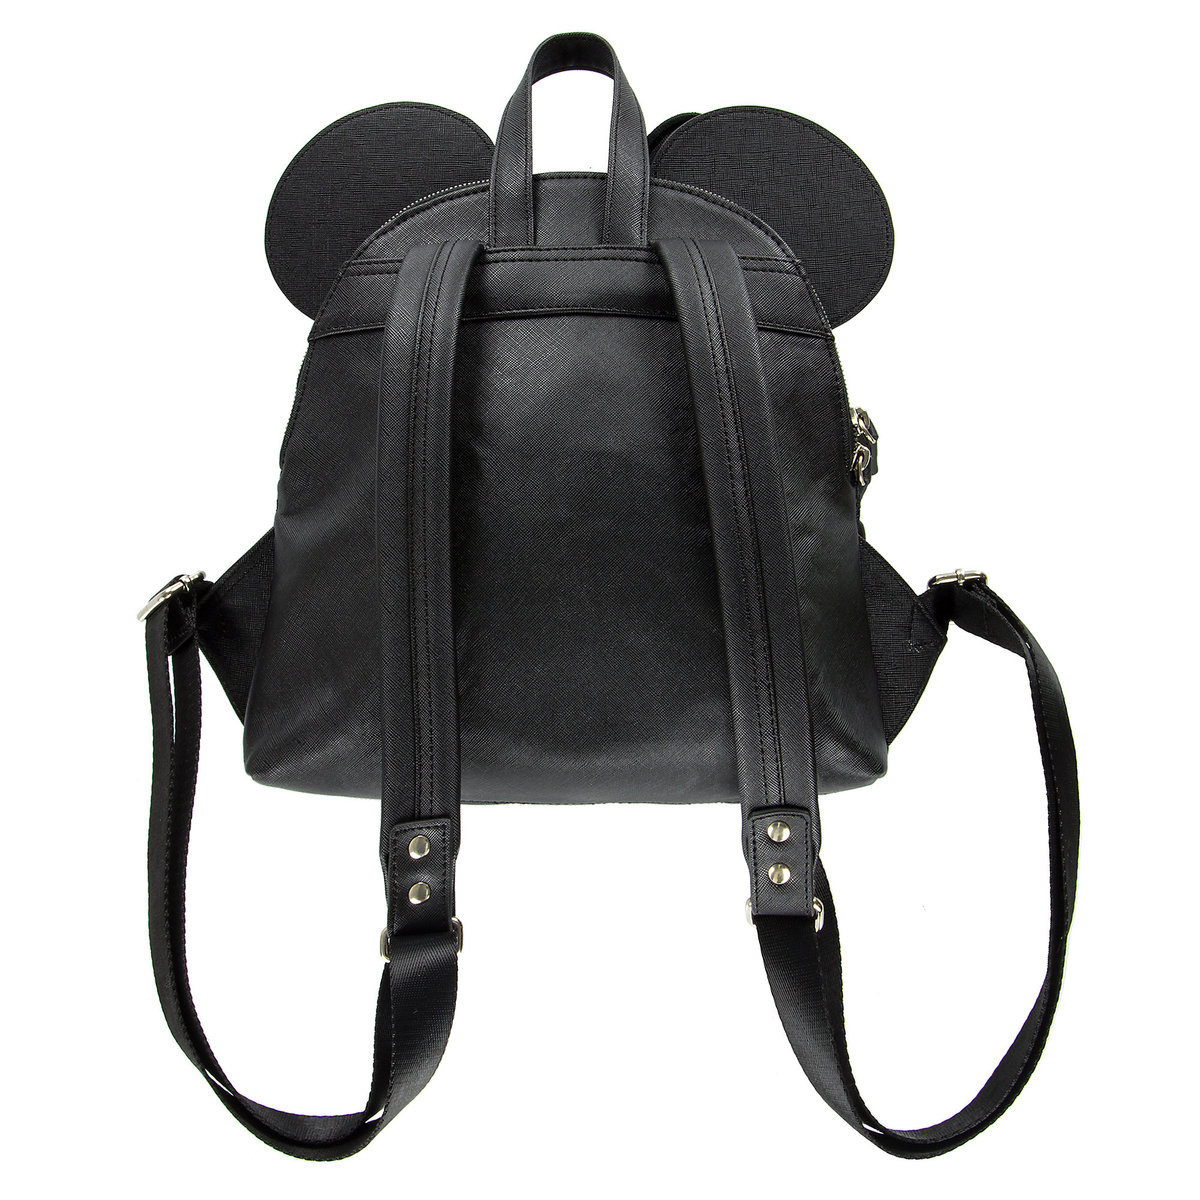 7bf9ba5bff5 Disney Boutique Backpack Bag - Minnie Rocks the Dots by Loungefly. Tap to  expand. Add to Wish List